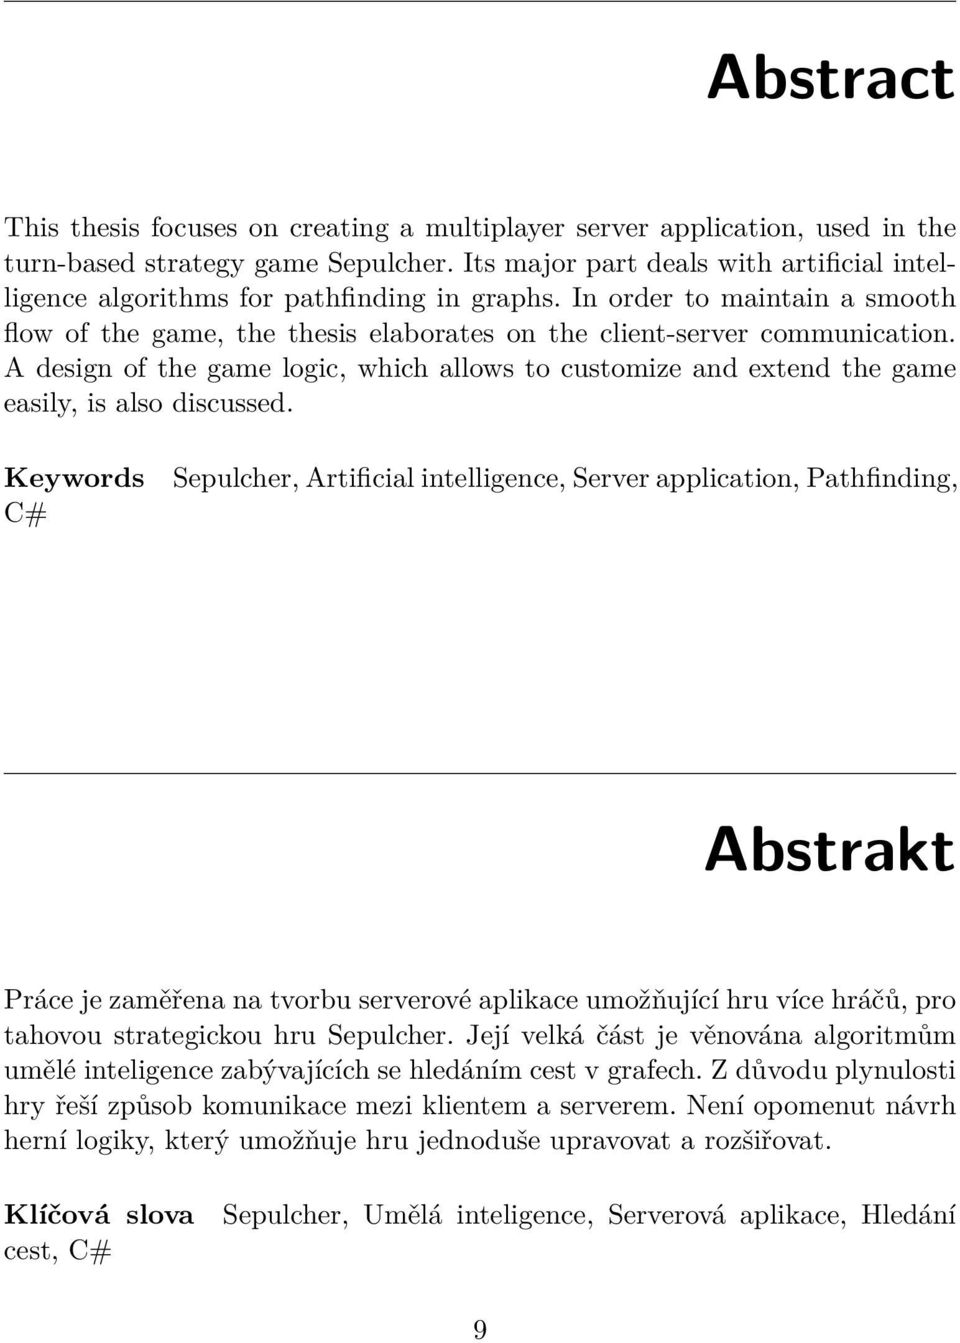 A design of the game logic, which allows to customize and extend the game easily, is also discussed.